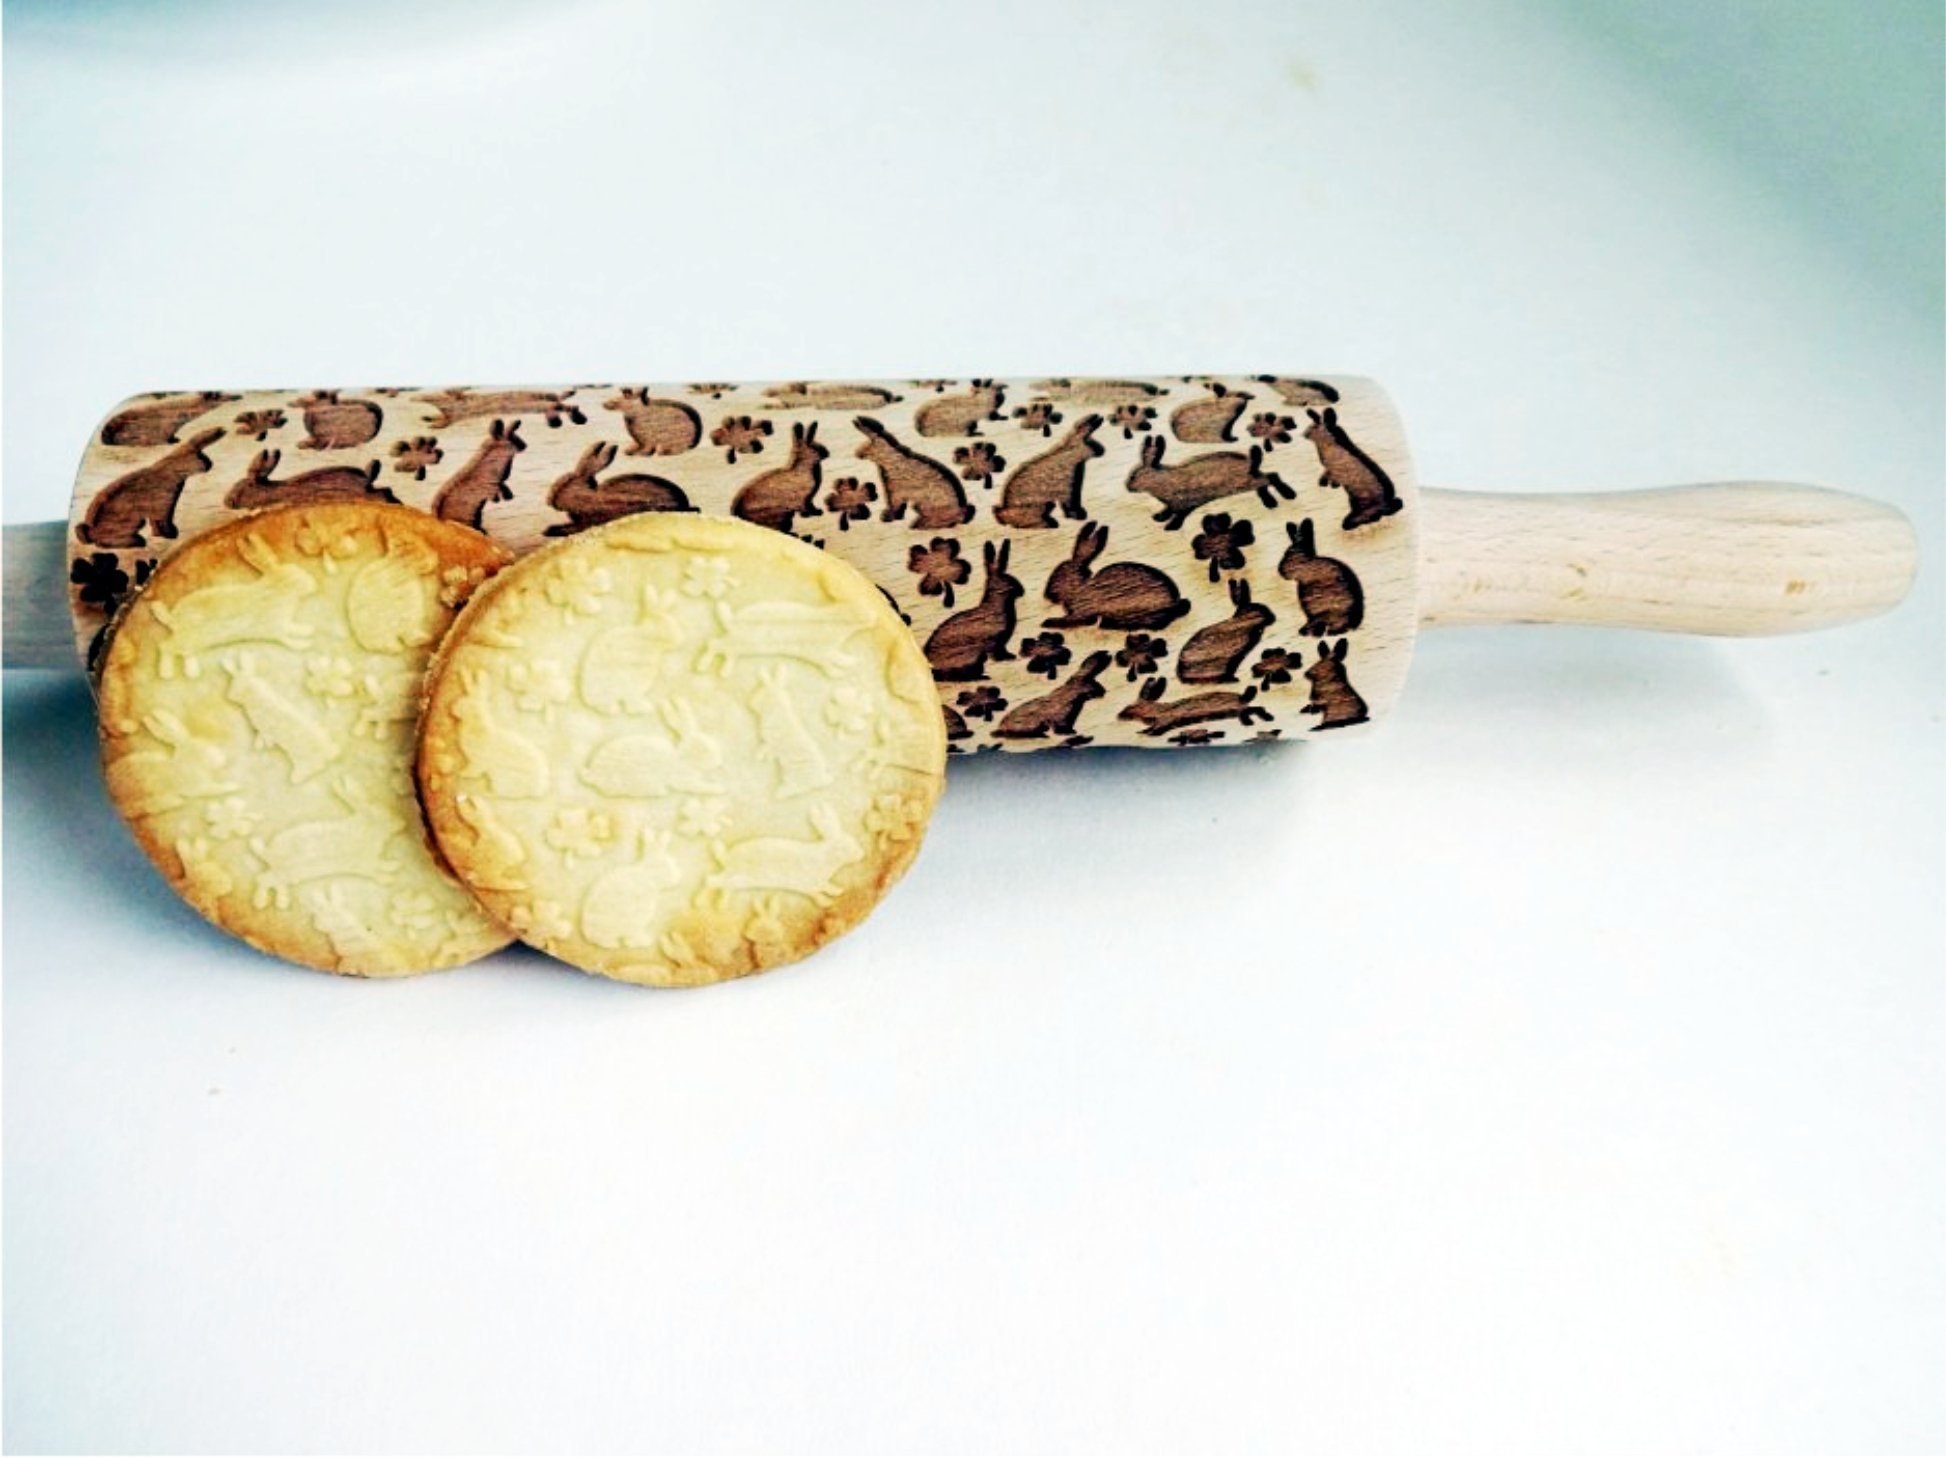 BUNNY Embossing Rolling Pin. Engraved rolling pin with Easter rabbits for embossed cookies. Easter bunnies and eggs. Hop. Clover. Easter decor